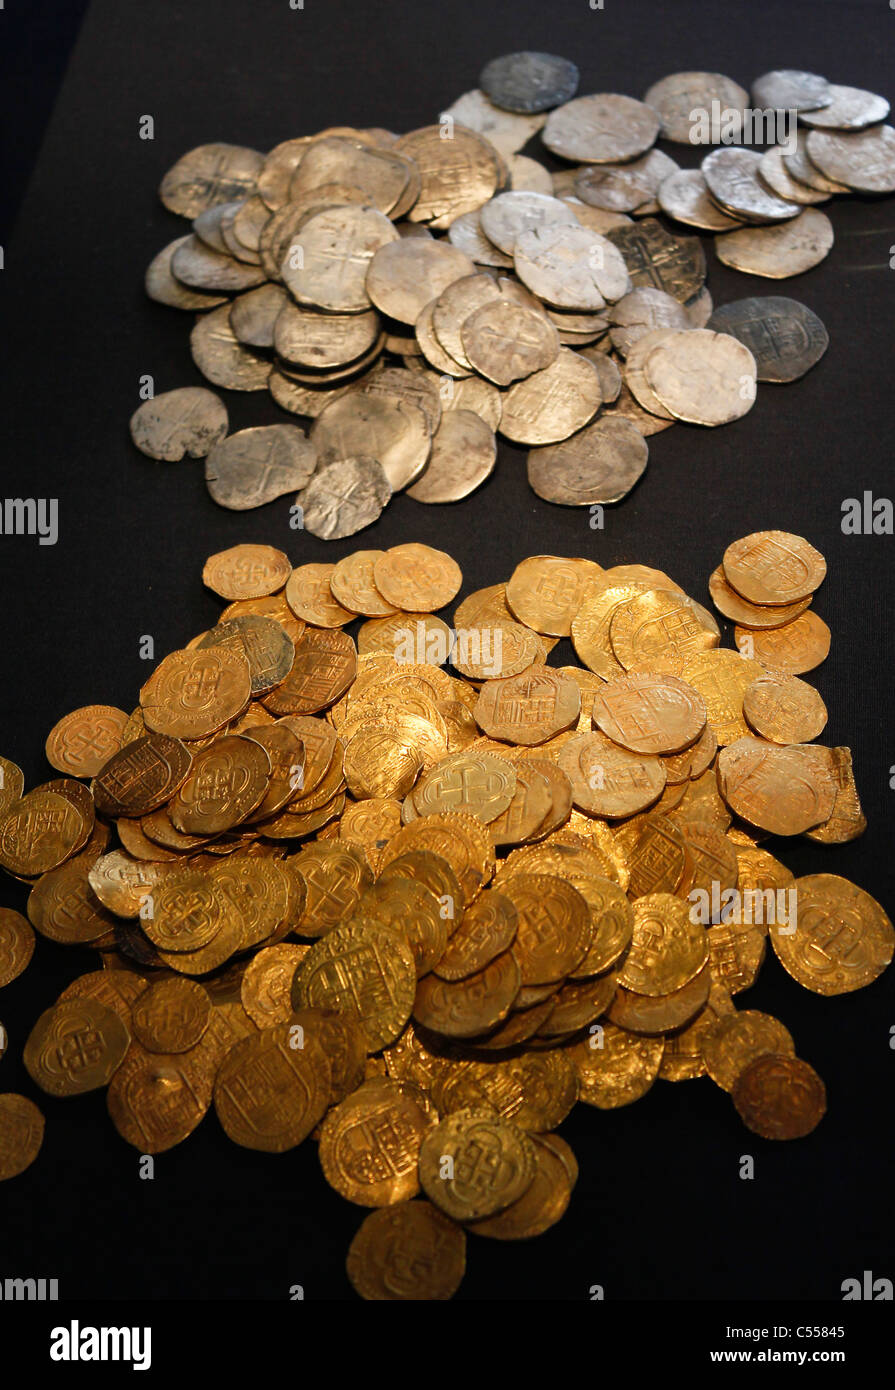 Gold And Silver Coins From The Wreck Of The Spanish Armada